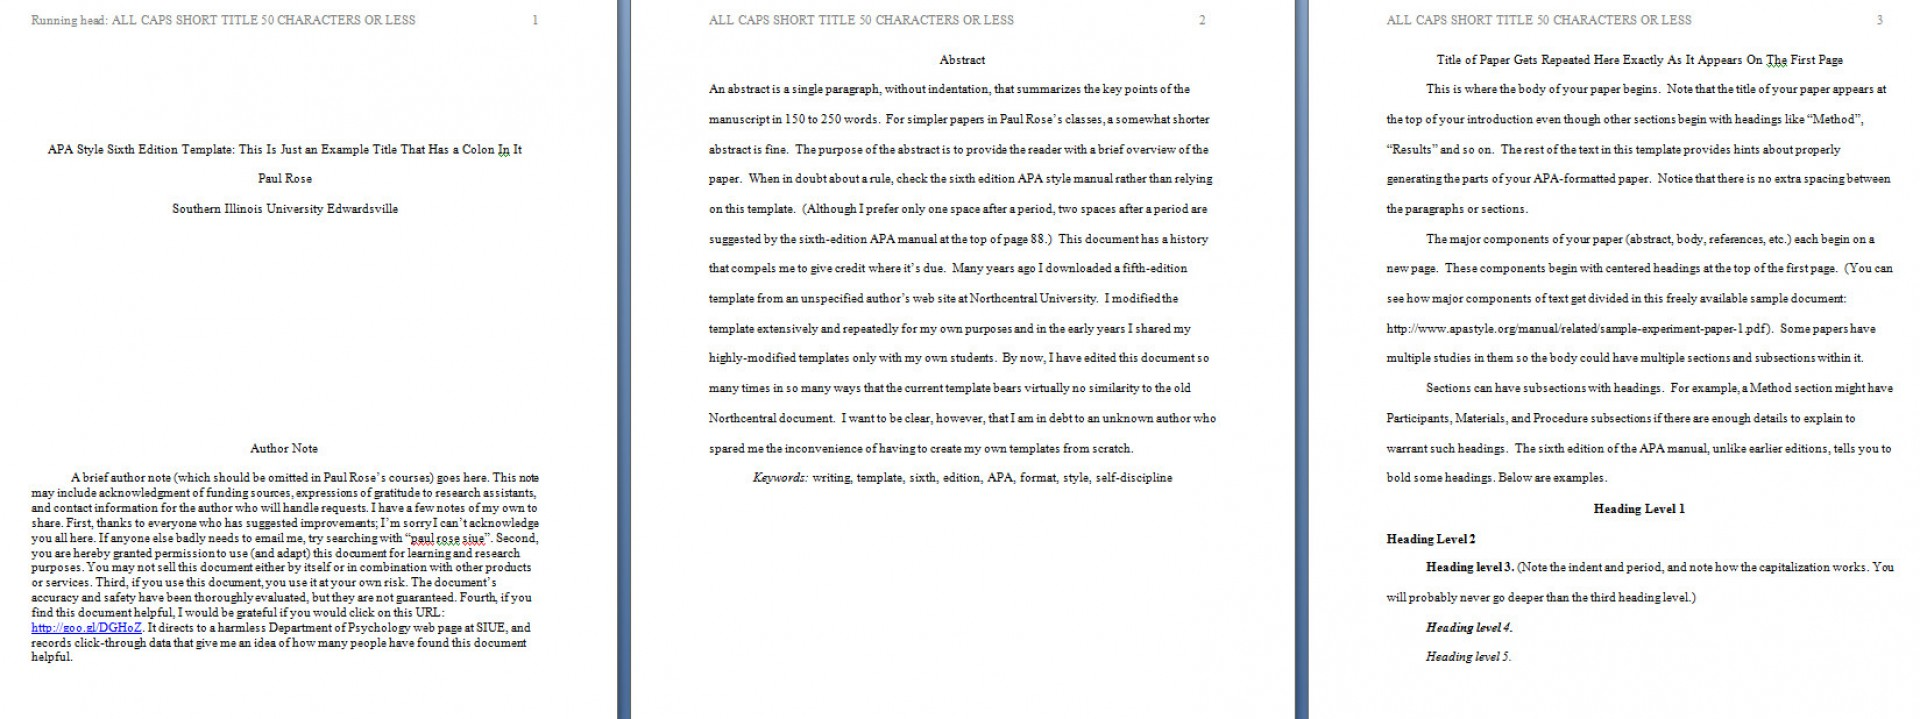 002 Apa Format Essay Template Preview Stupendous Example Title Page Sample Pdf 2017 1920